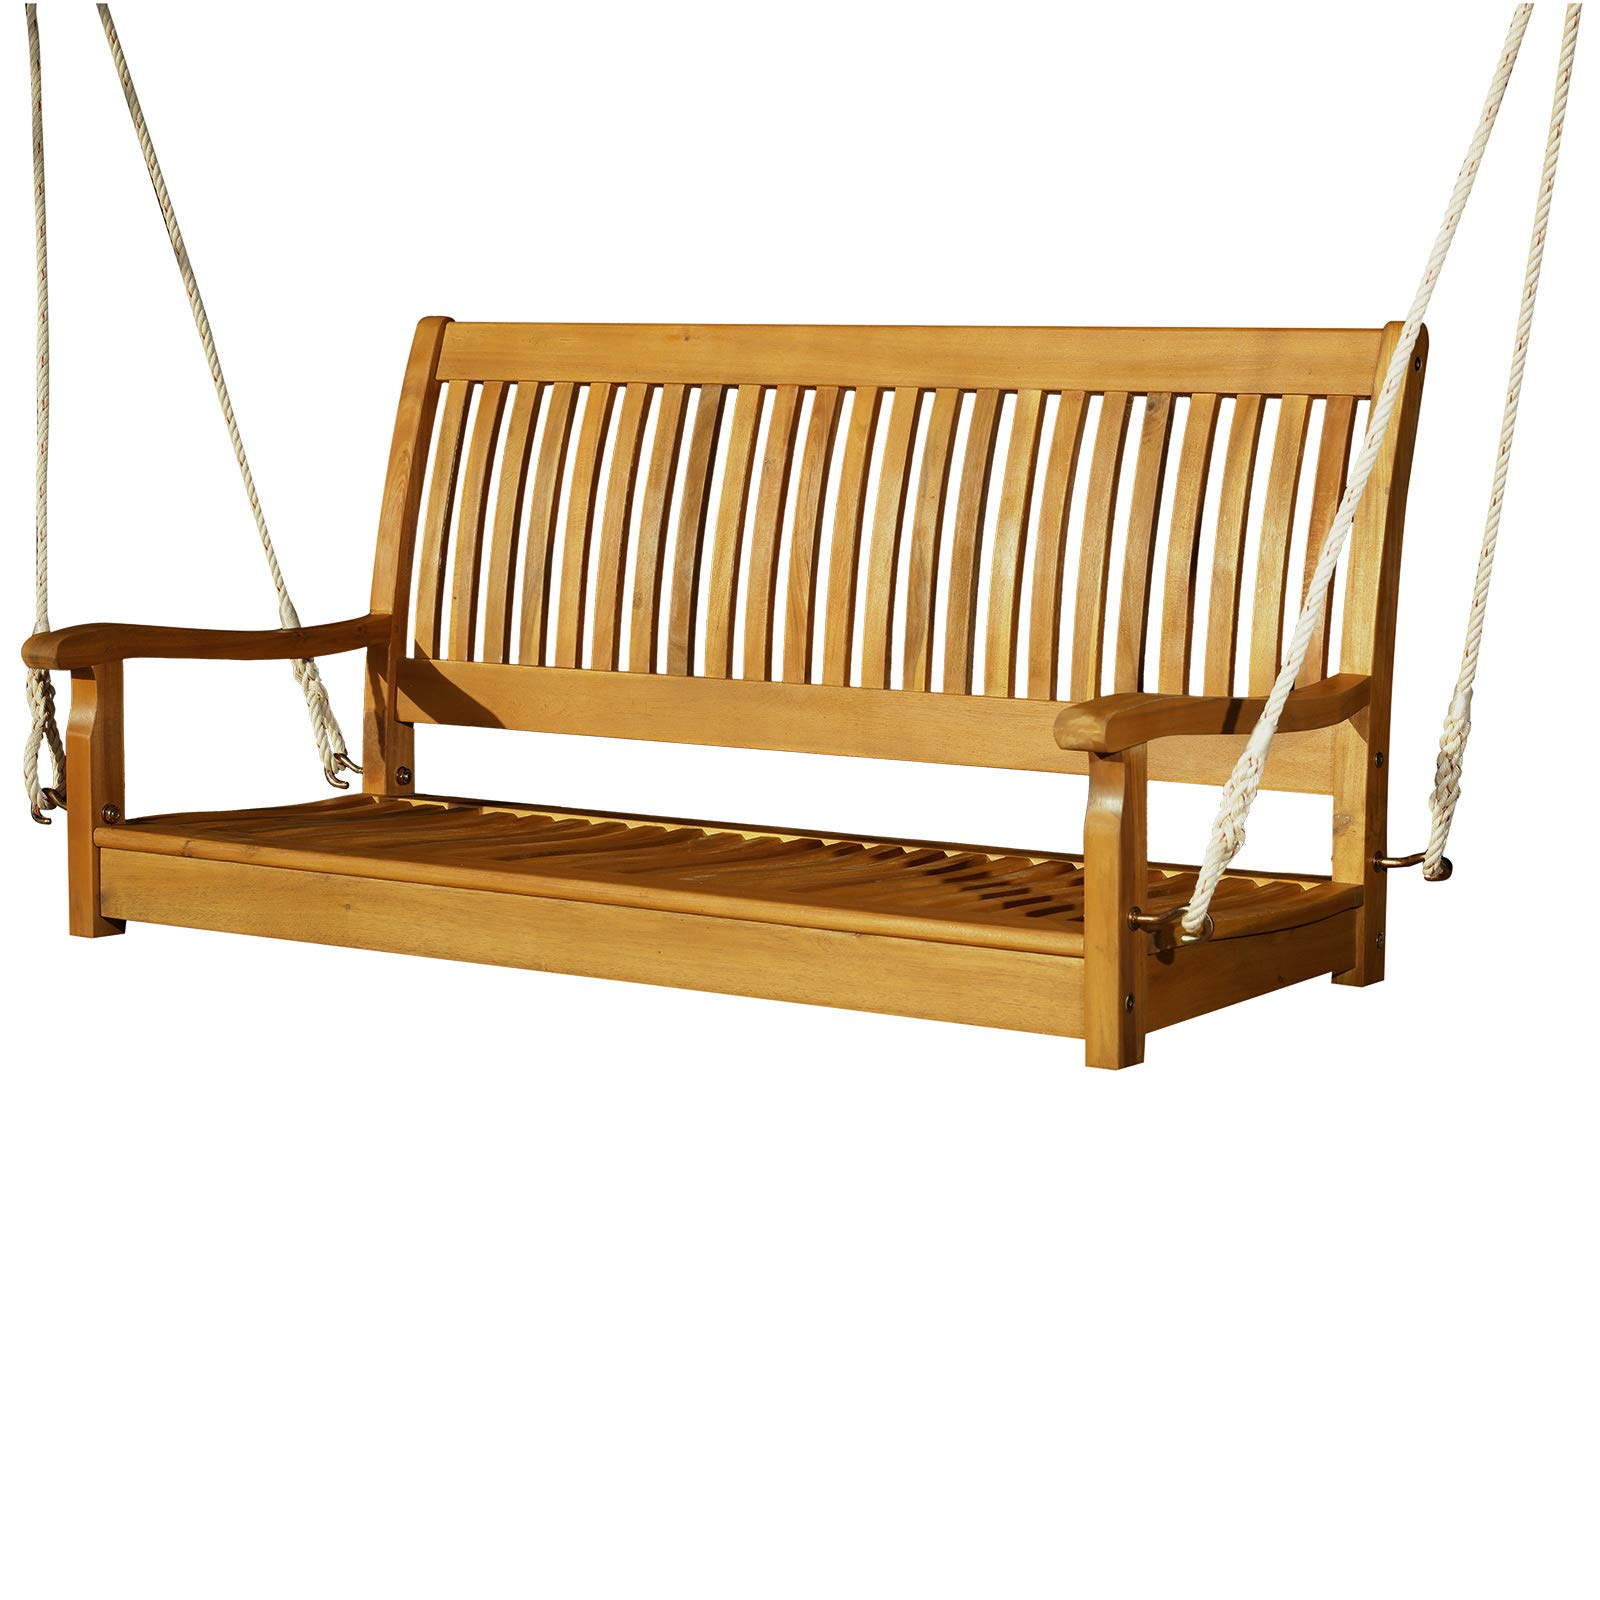 "Outsunny 48"" Hanging Porch Swing Seat Acacia Wood 2 Person Bench"